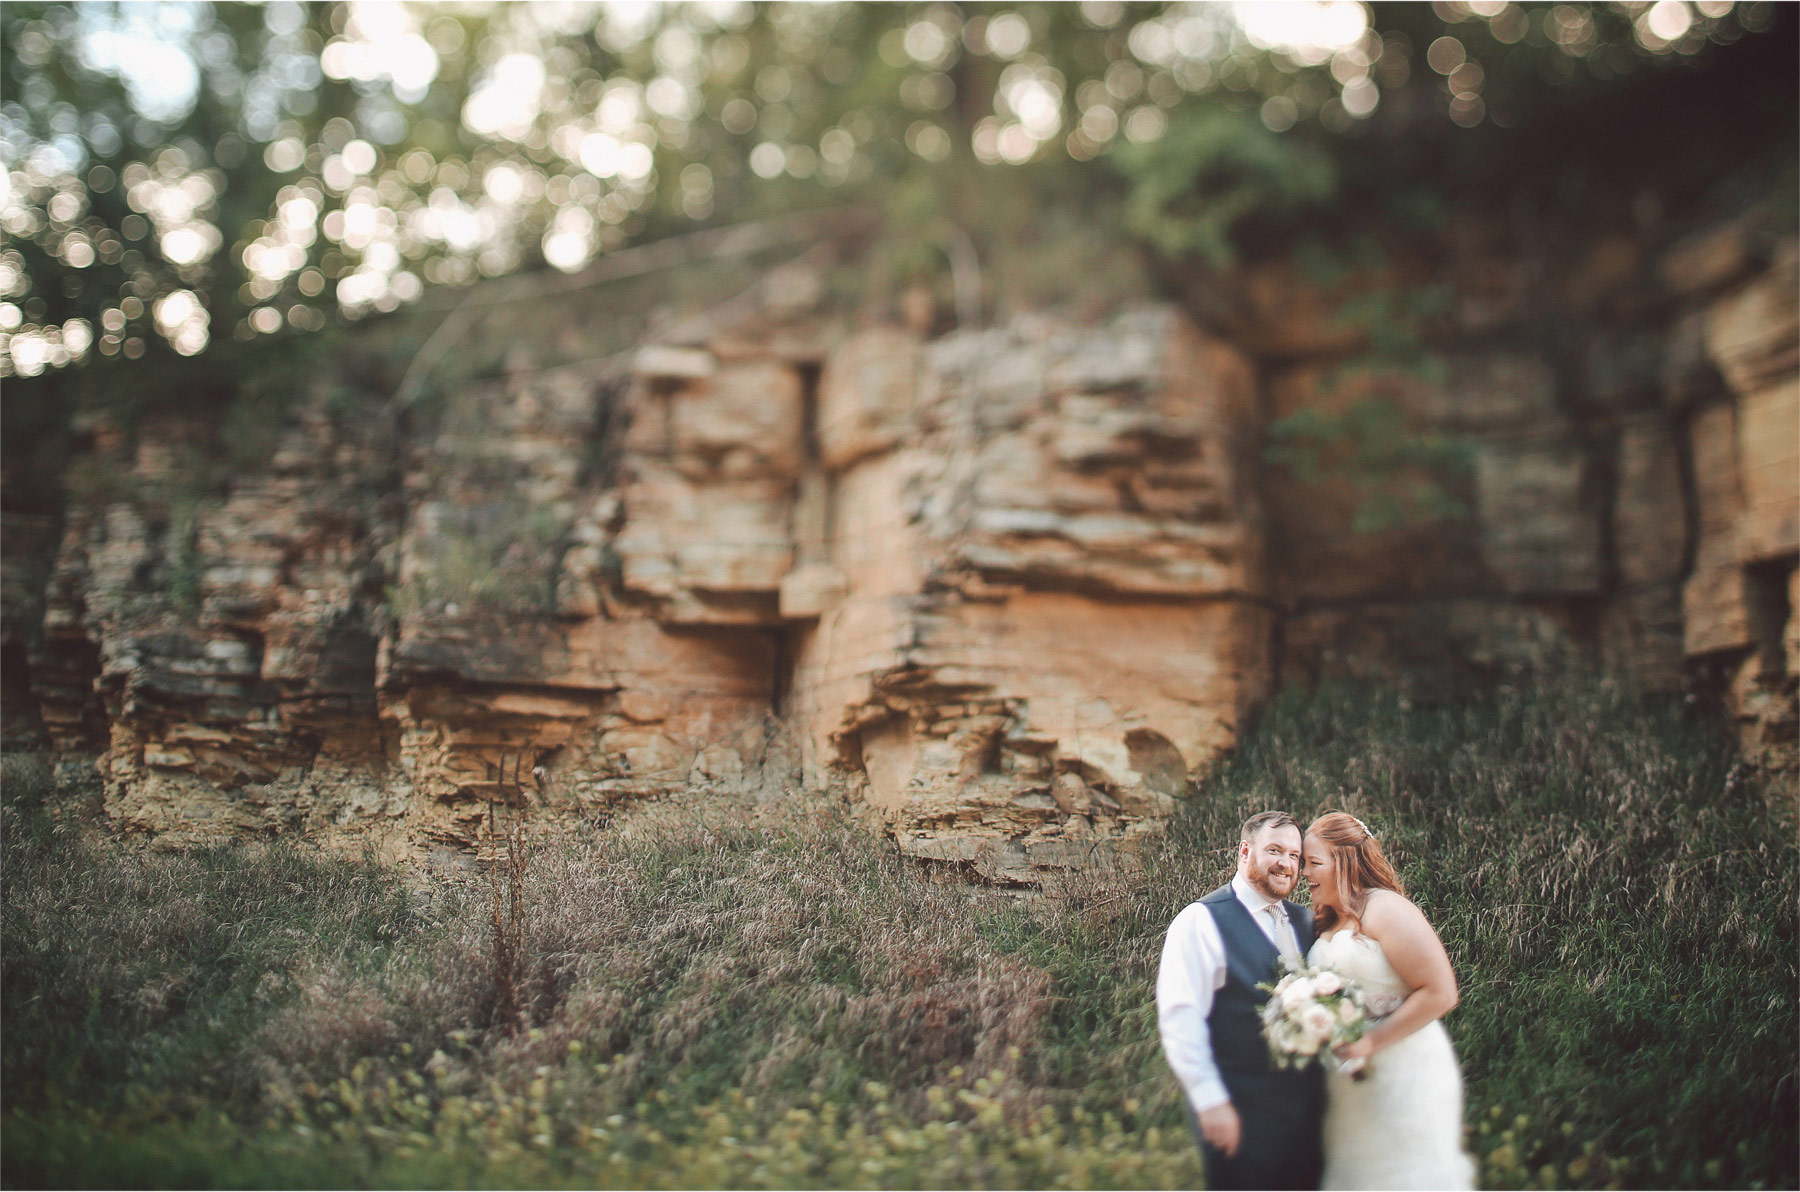 21-Cannon-Falls-Minnesota-Wedding-Photographer-by-Andrew-Vick-Photography-Summer-River-Winery-Bride-Groom-Laughter-Sand-Stone-Vintage-Becca-and-Donal.jpg